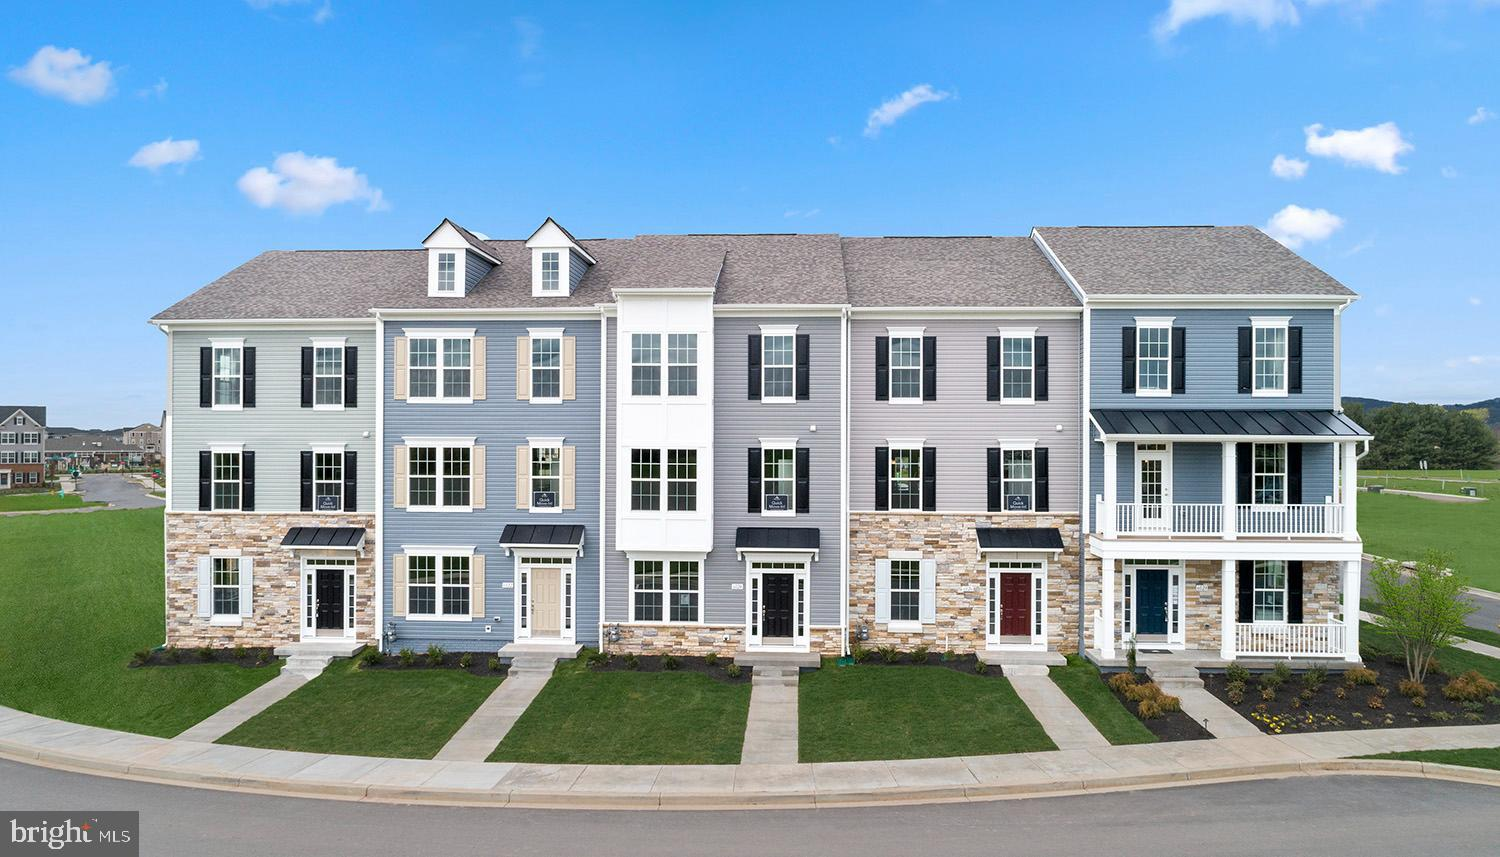 NEW CONSTRUCTION MOVE-IN AUGUST 2021! Beautiful Brand new 2-car garage Upton Model Townhome with 4ft